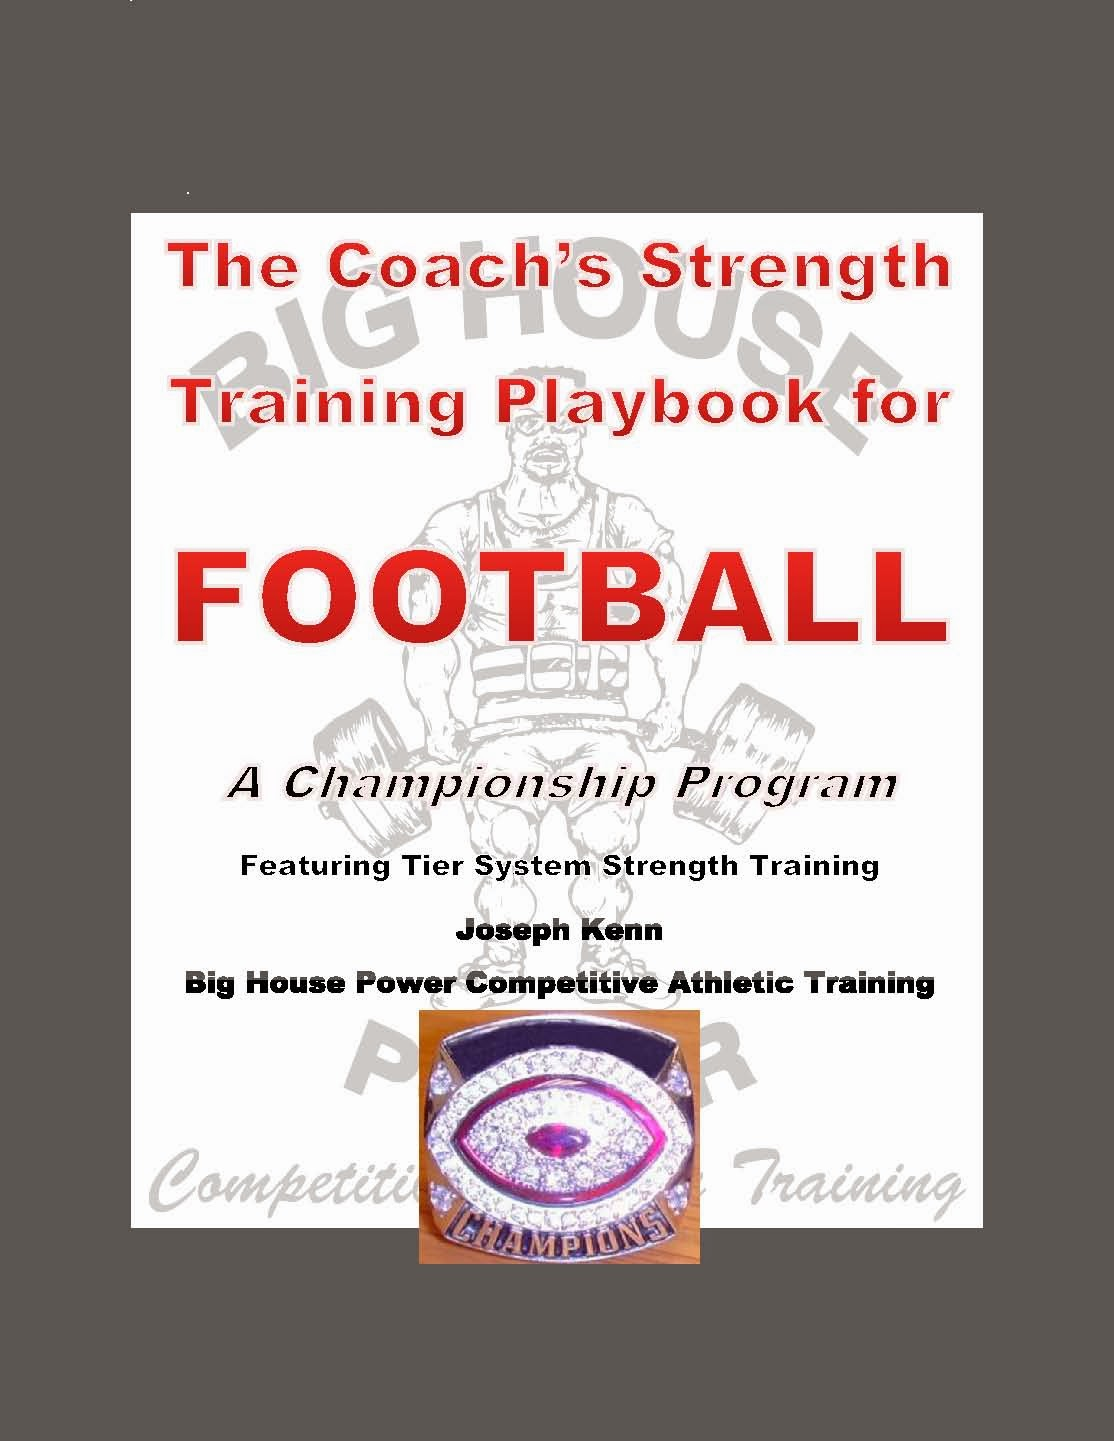 The Coachs Strength Training Playbook For Football Launch Date Is